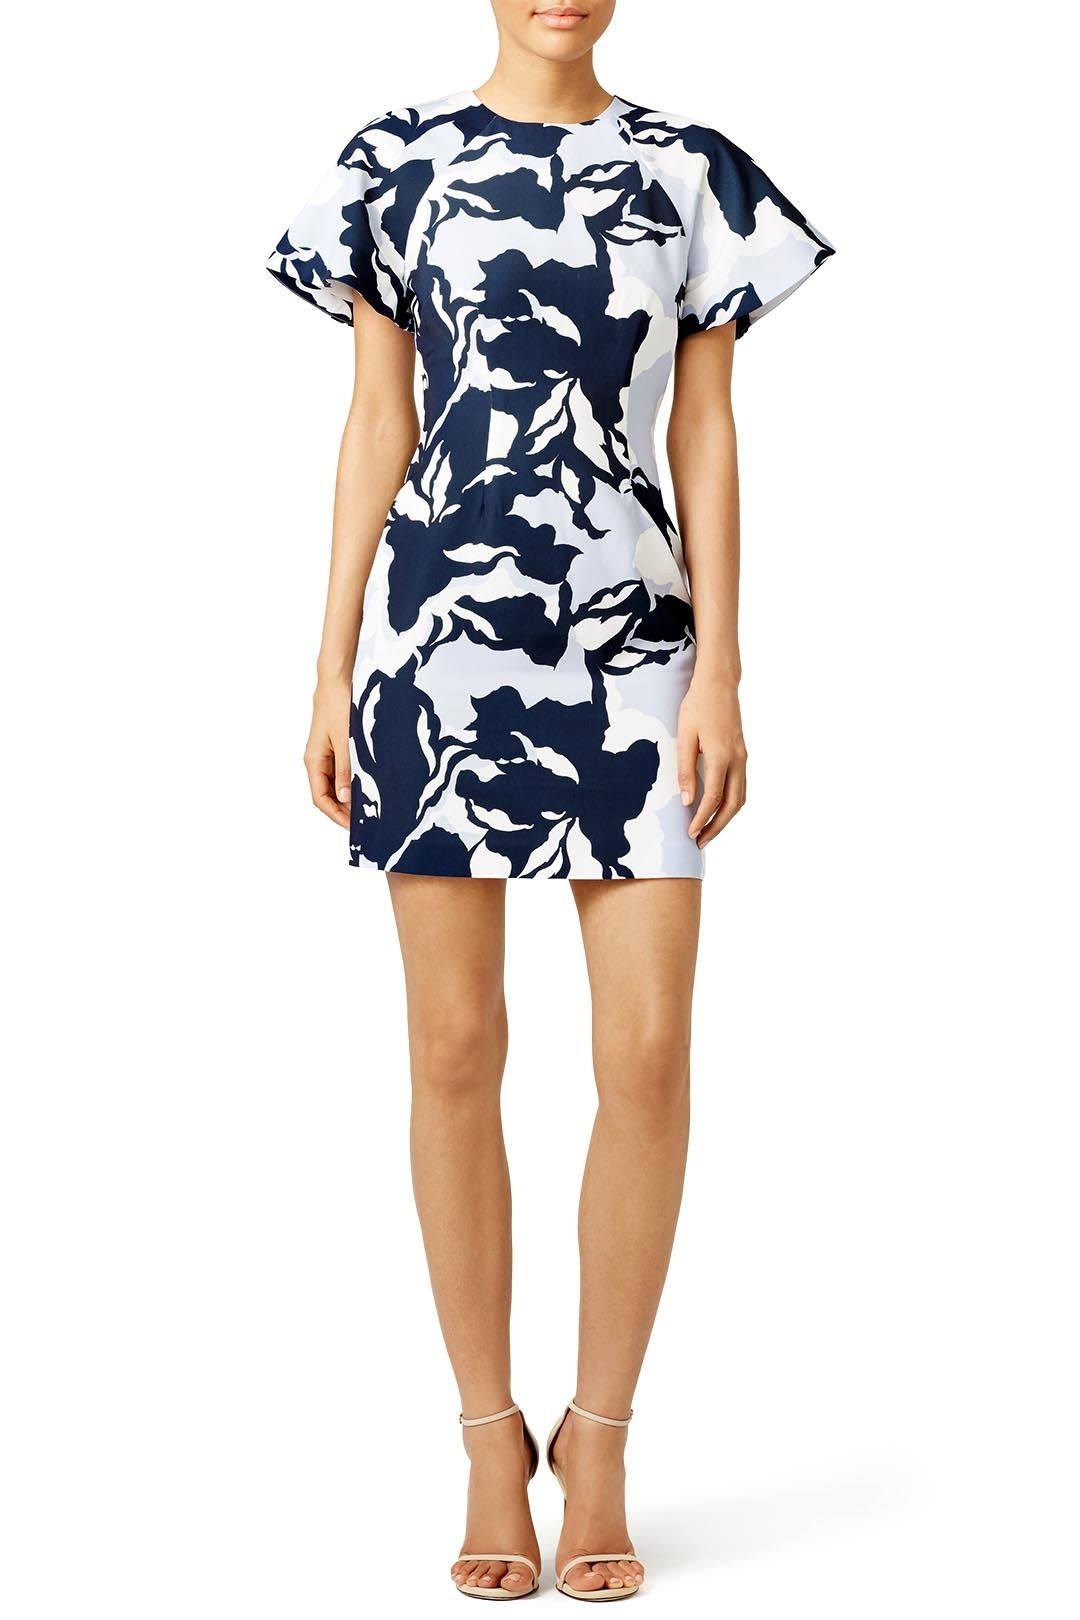 Navy Camouflage Wasting Time Dress By Keepsake For 30